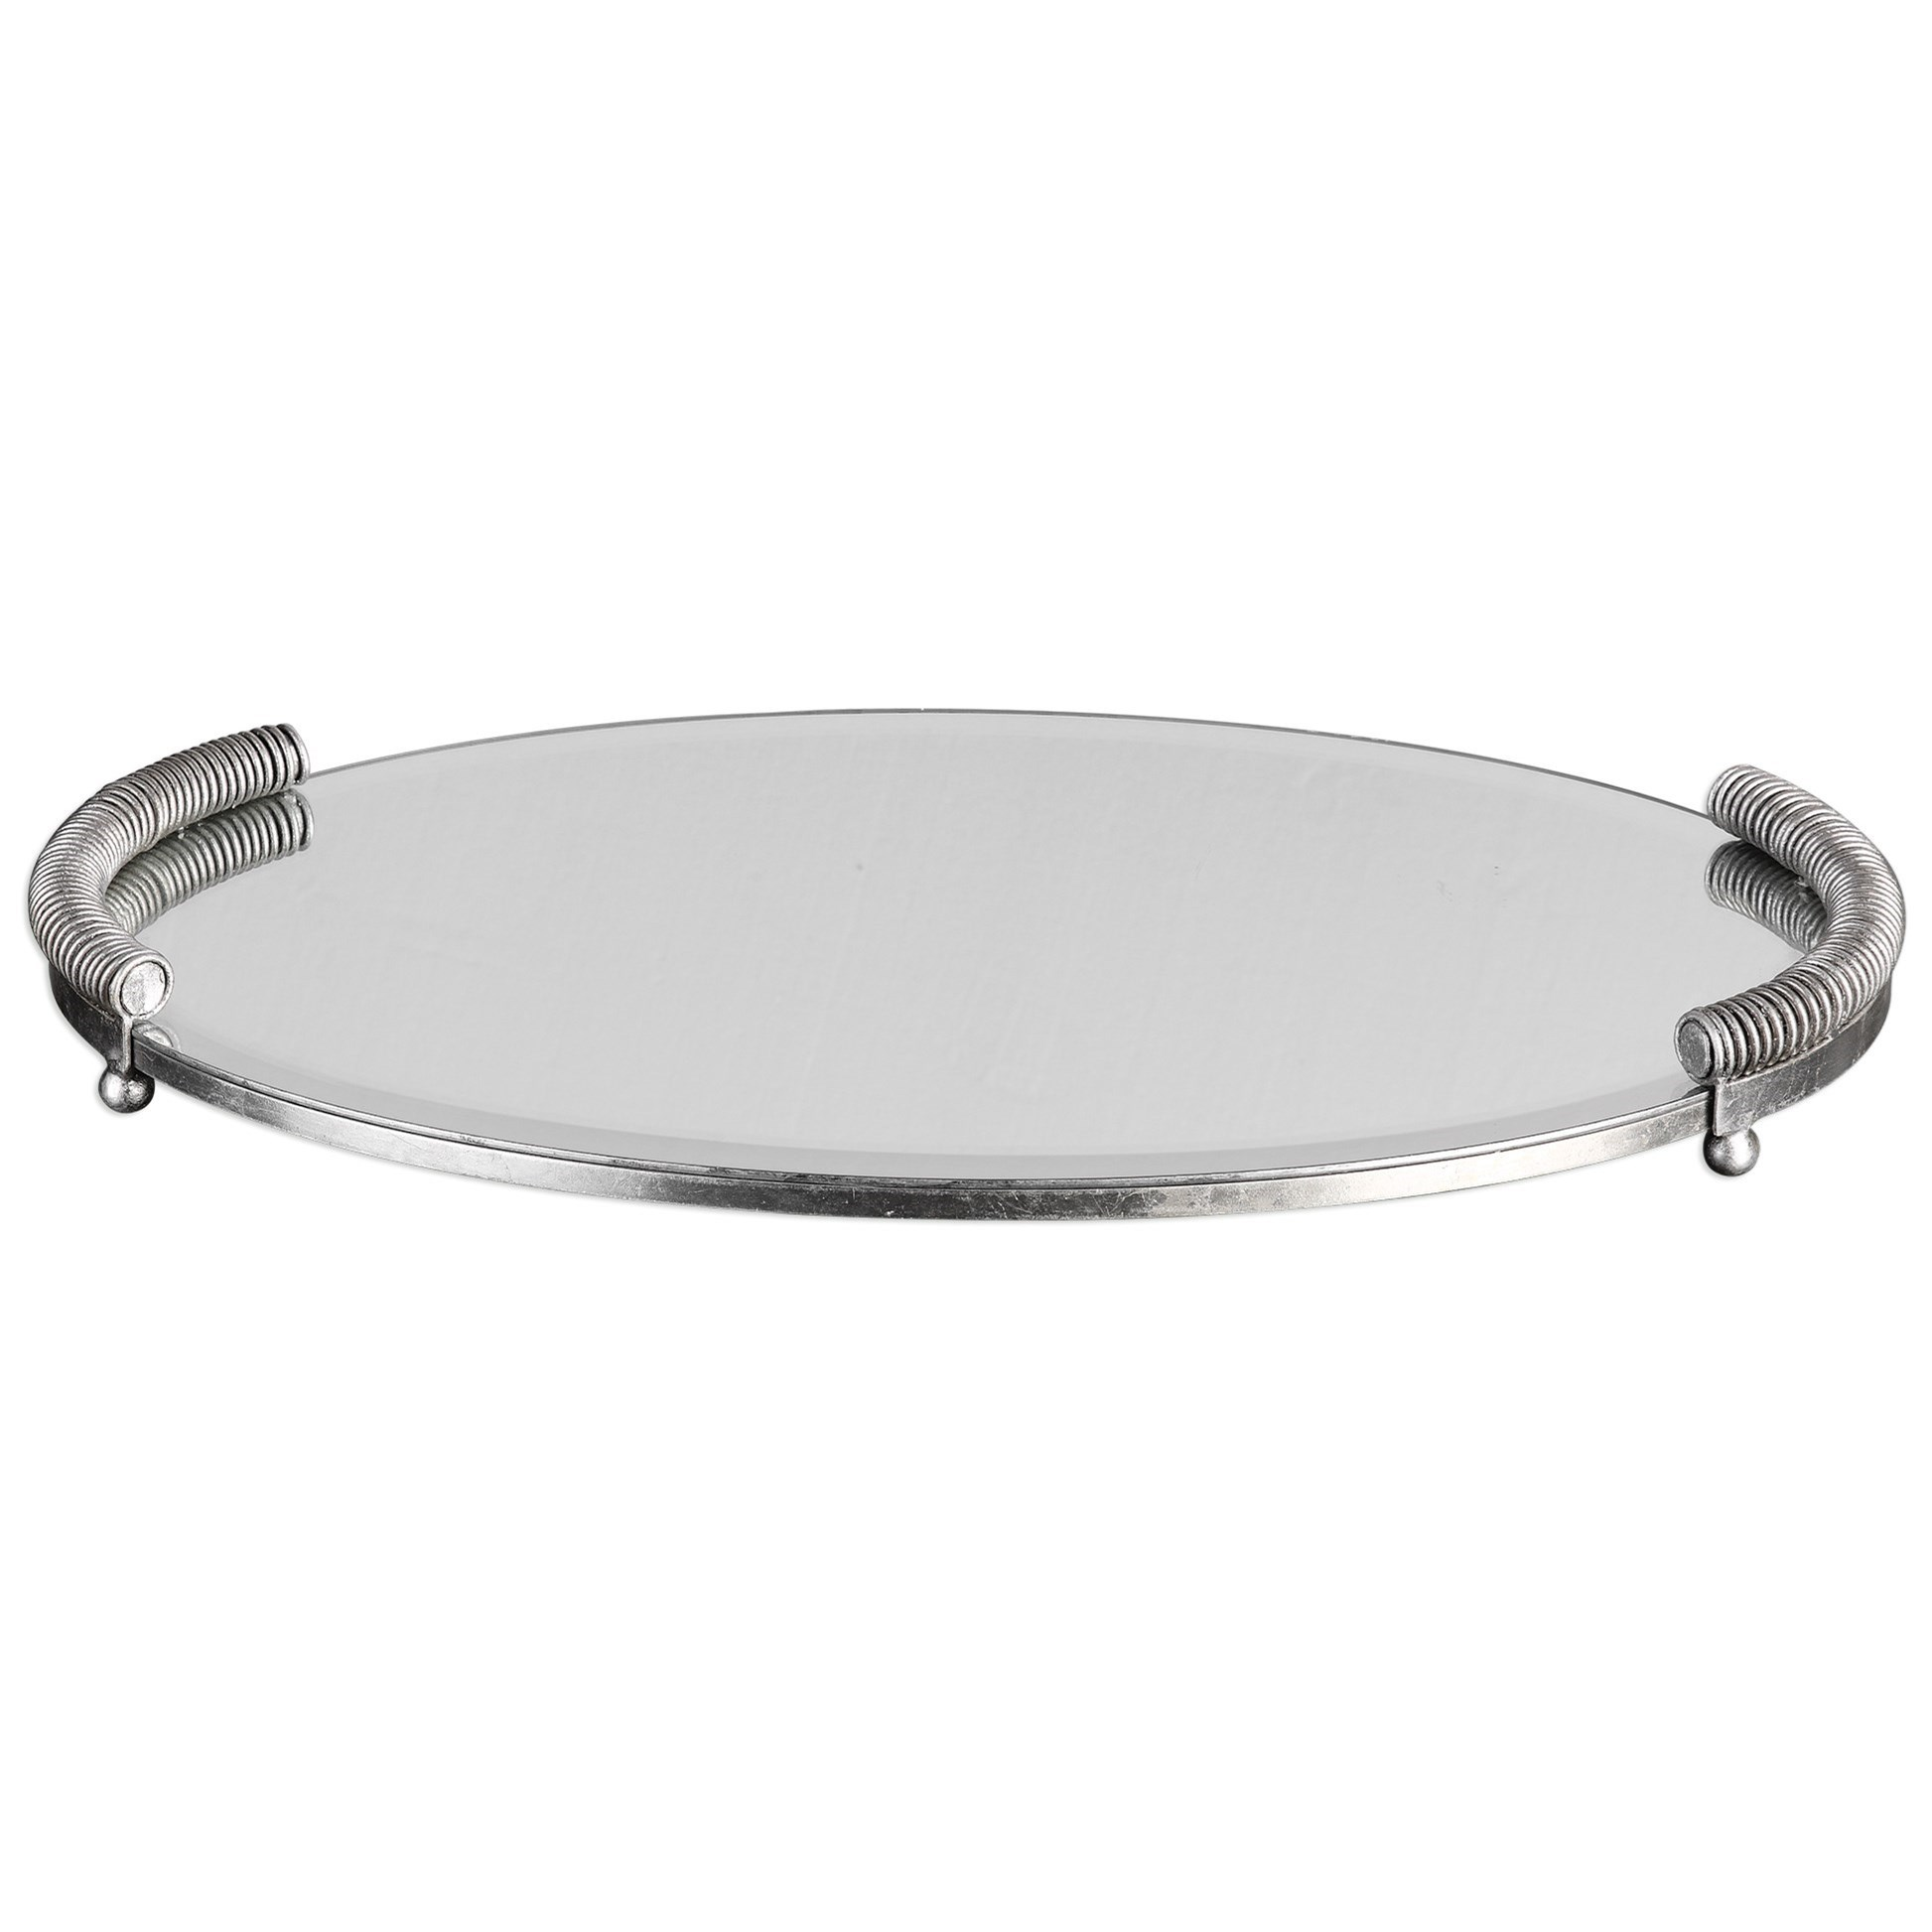 Uttermost Accessories  Egidio Mirrored Oval Tray - Item Number: 20116